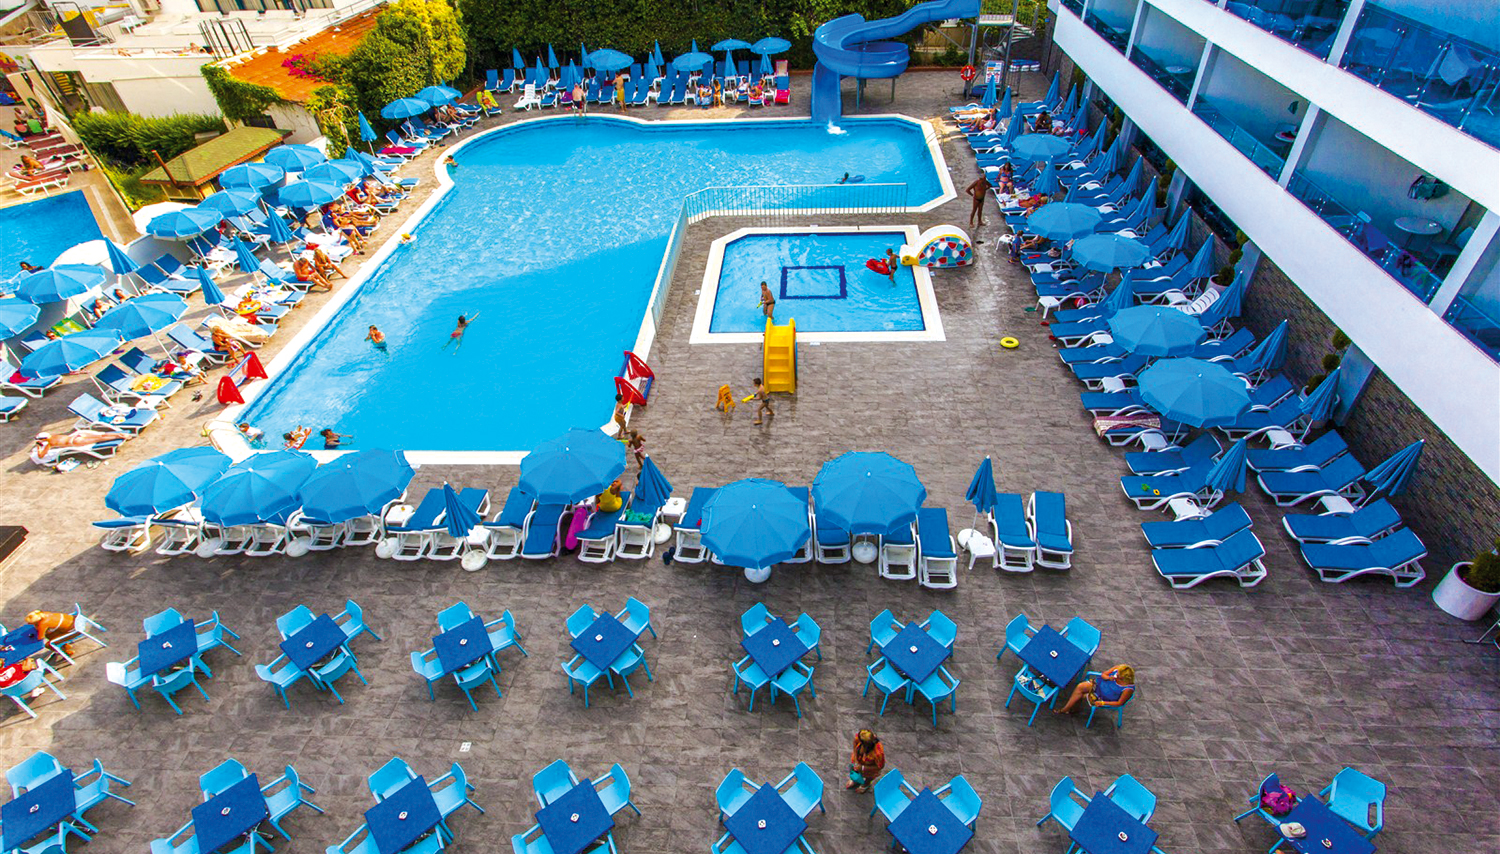 Avena Resort & SPA hotell (Antalya, Türgi)